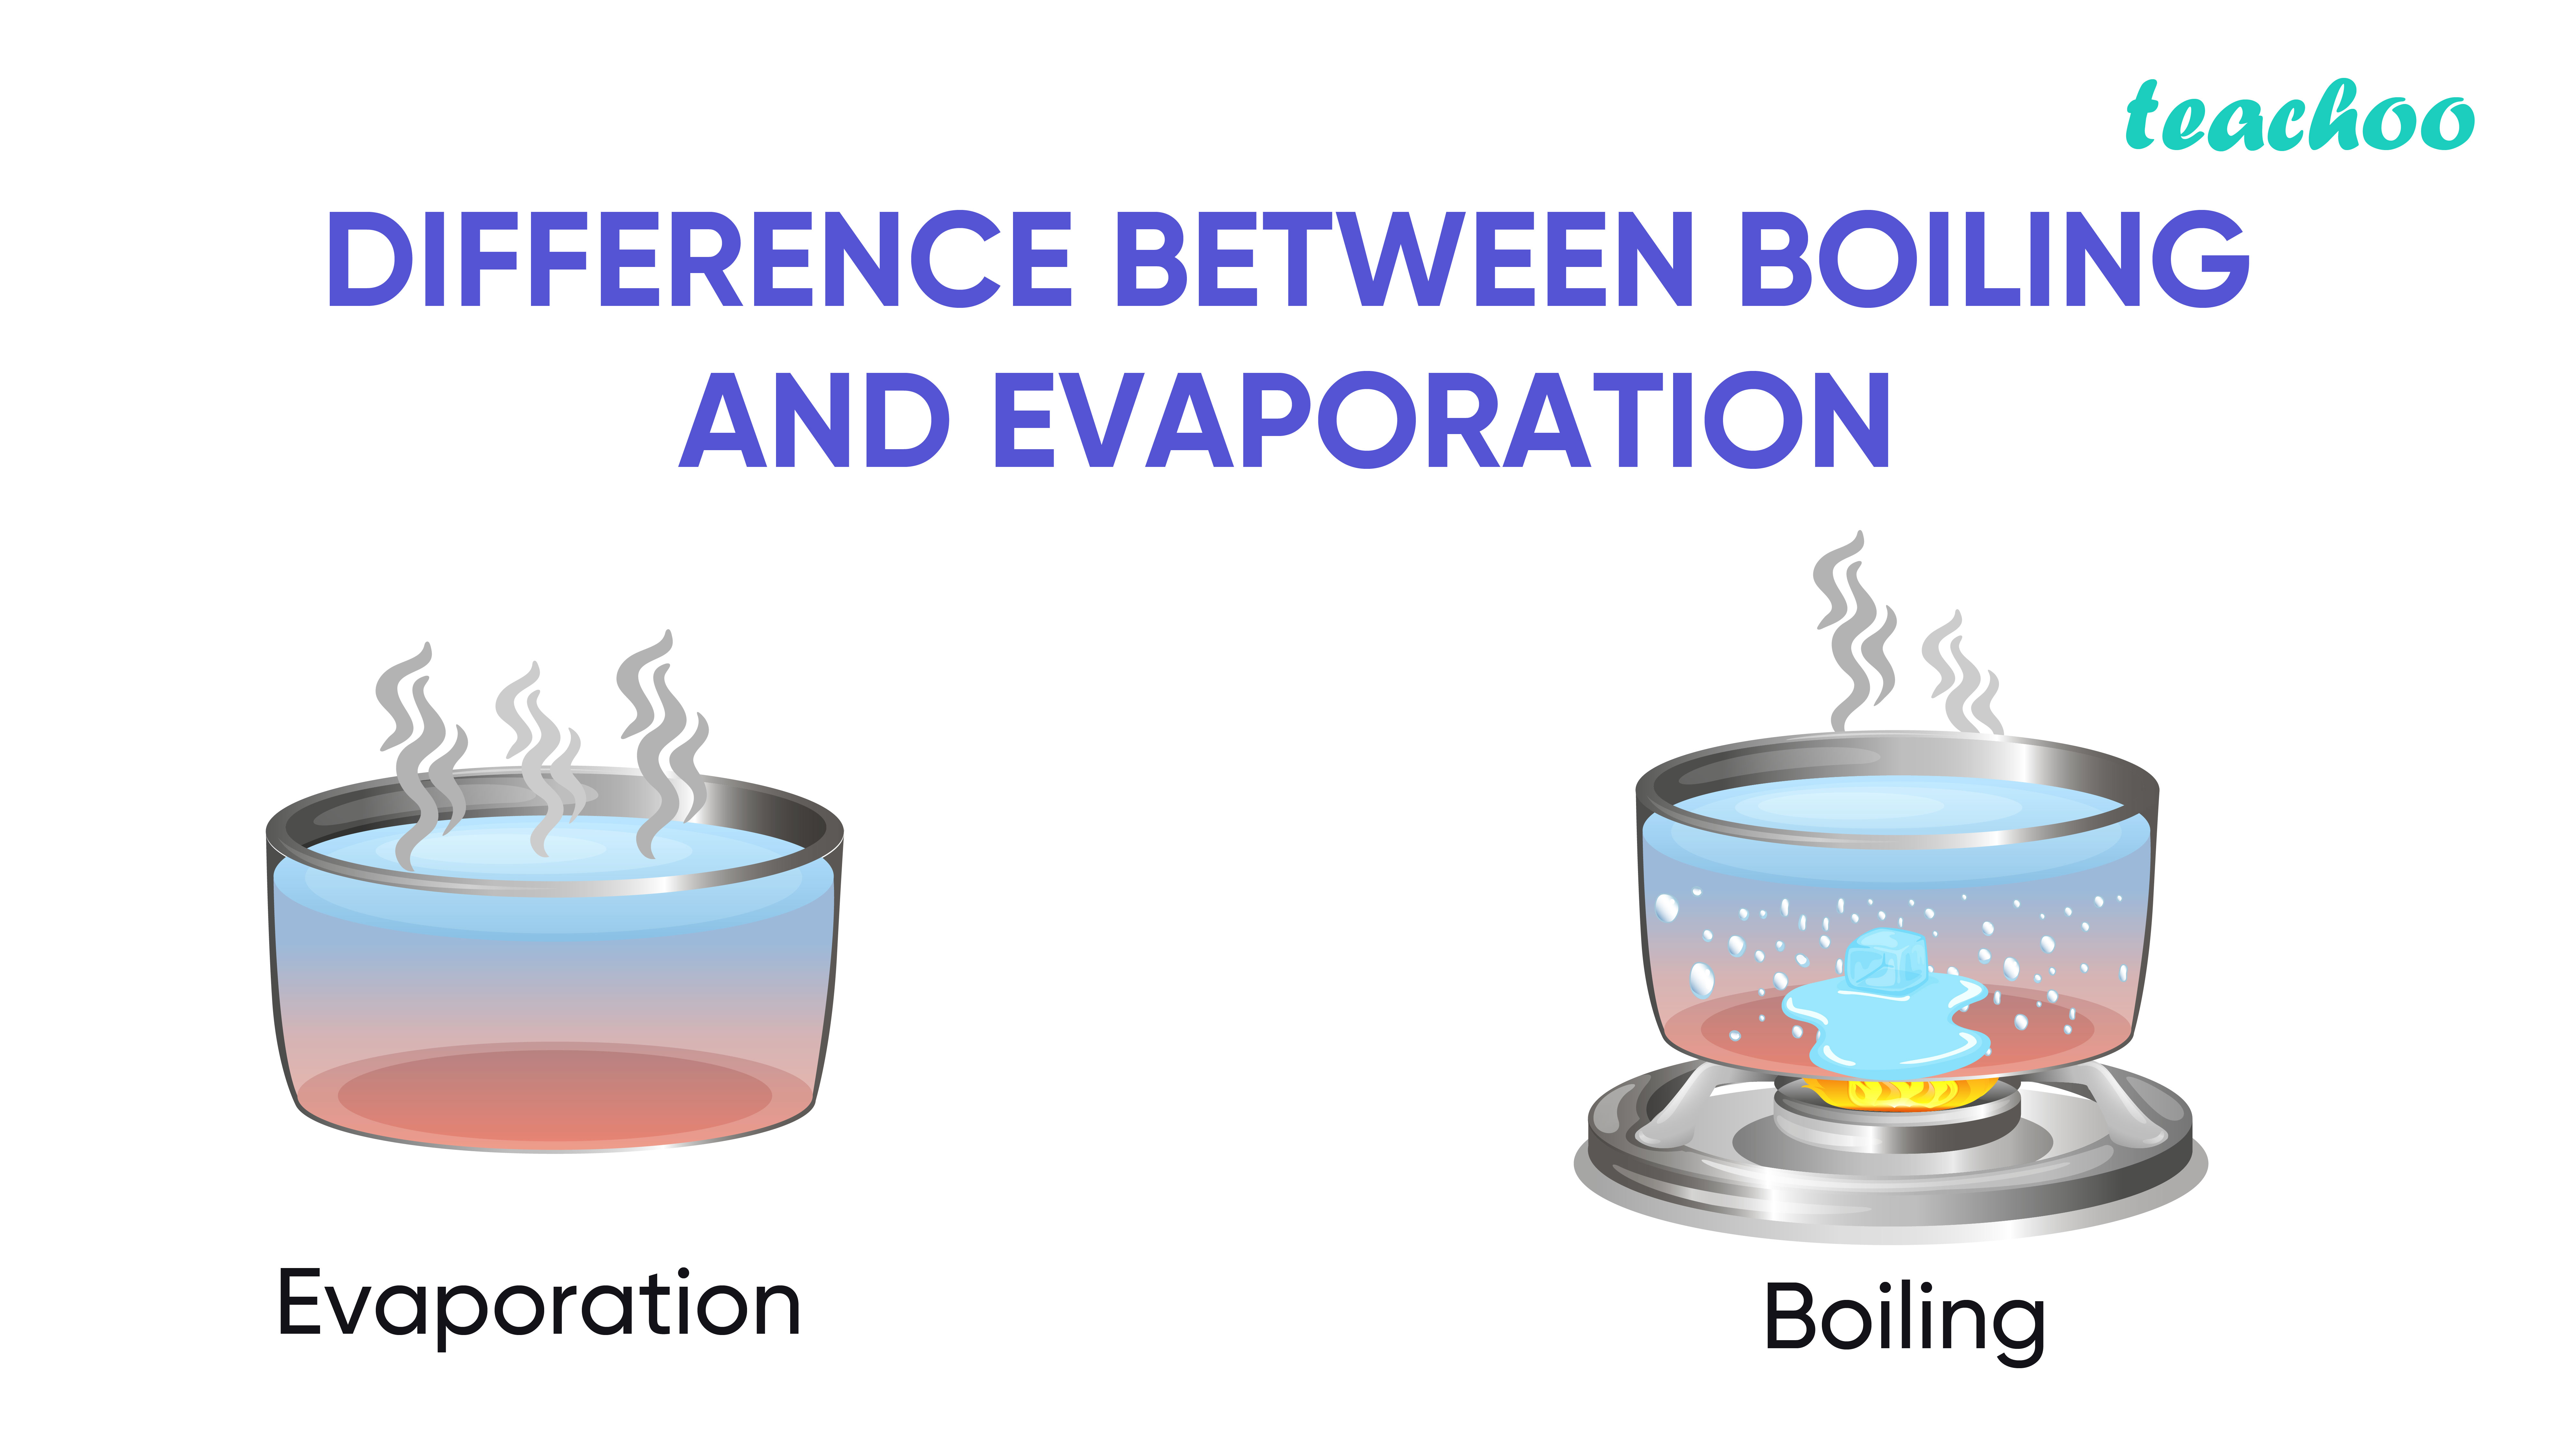 Difference between boiling and evaporation-Teachoo--01.jpg